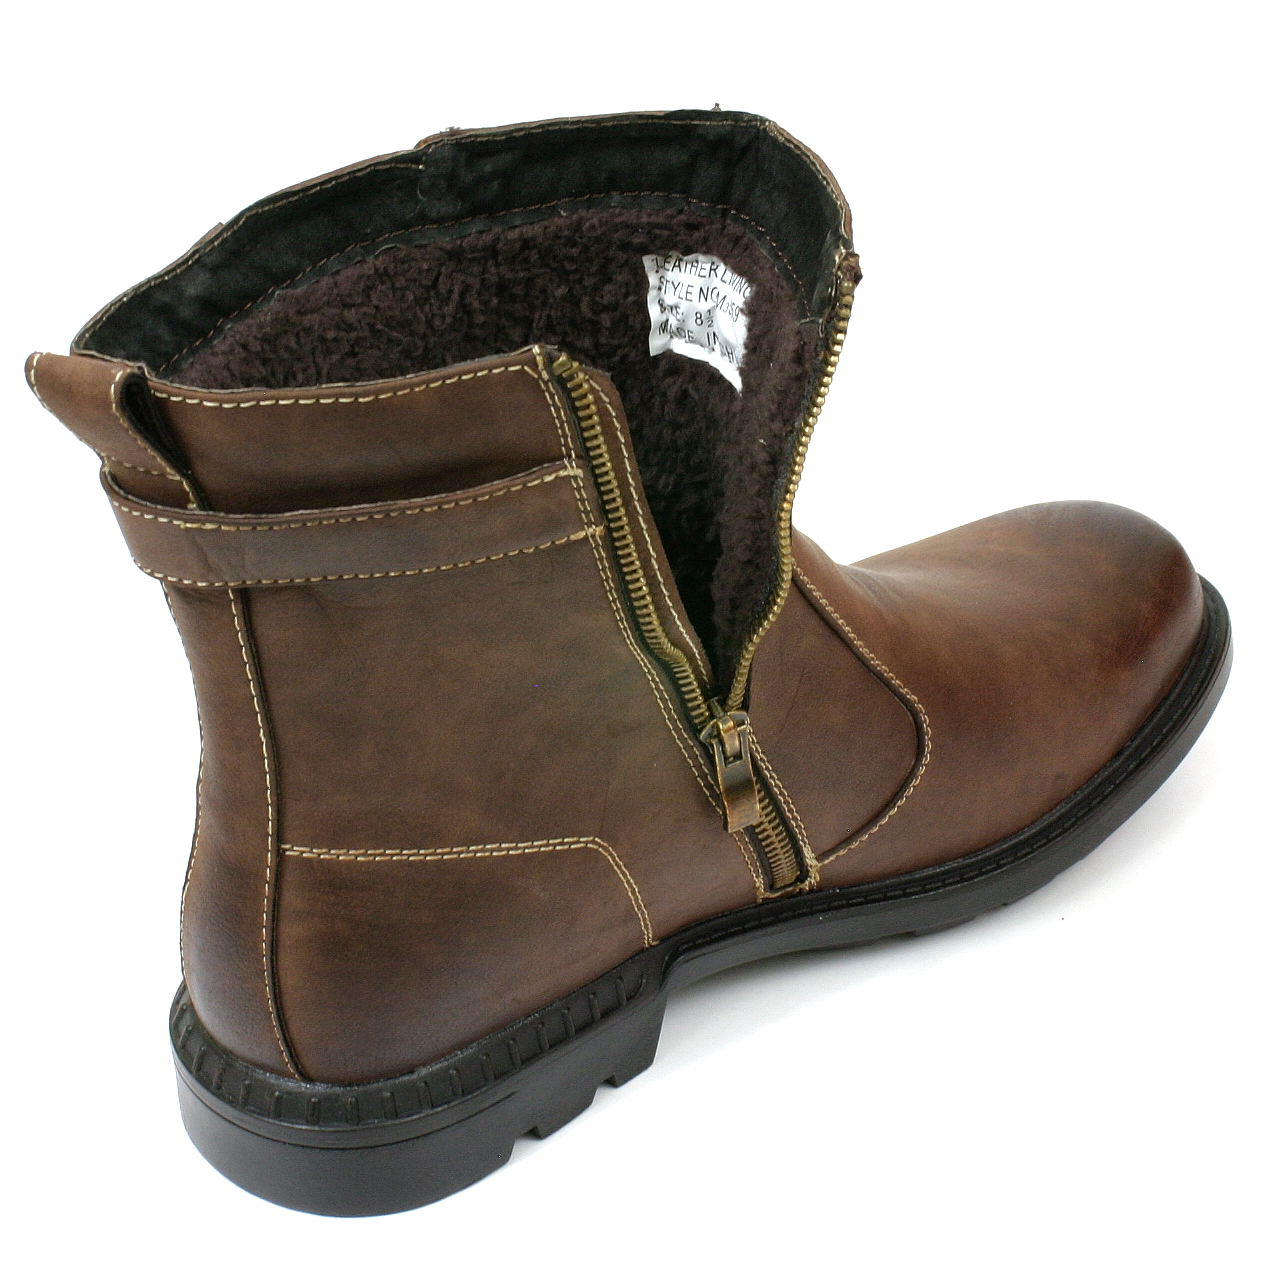 Mens Fur Lined Boots nRDSyMFx